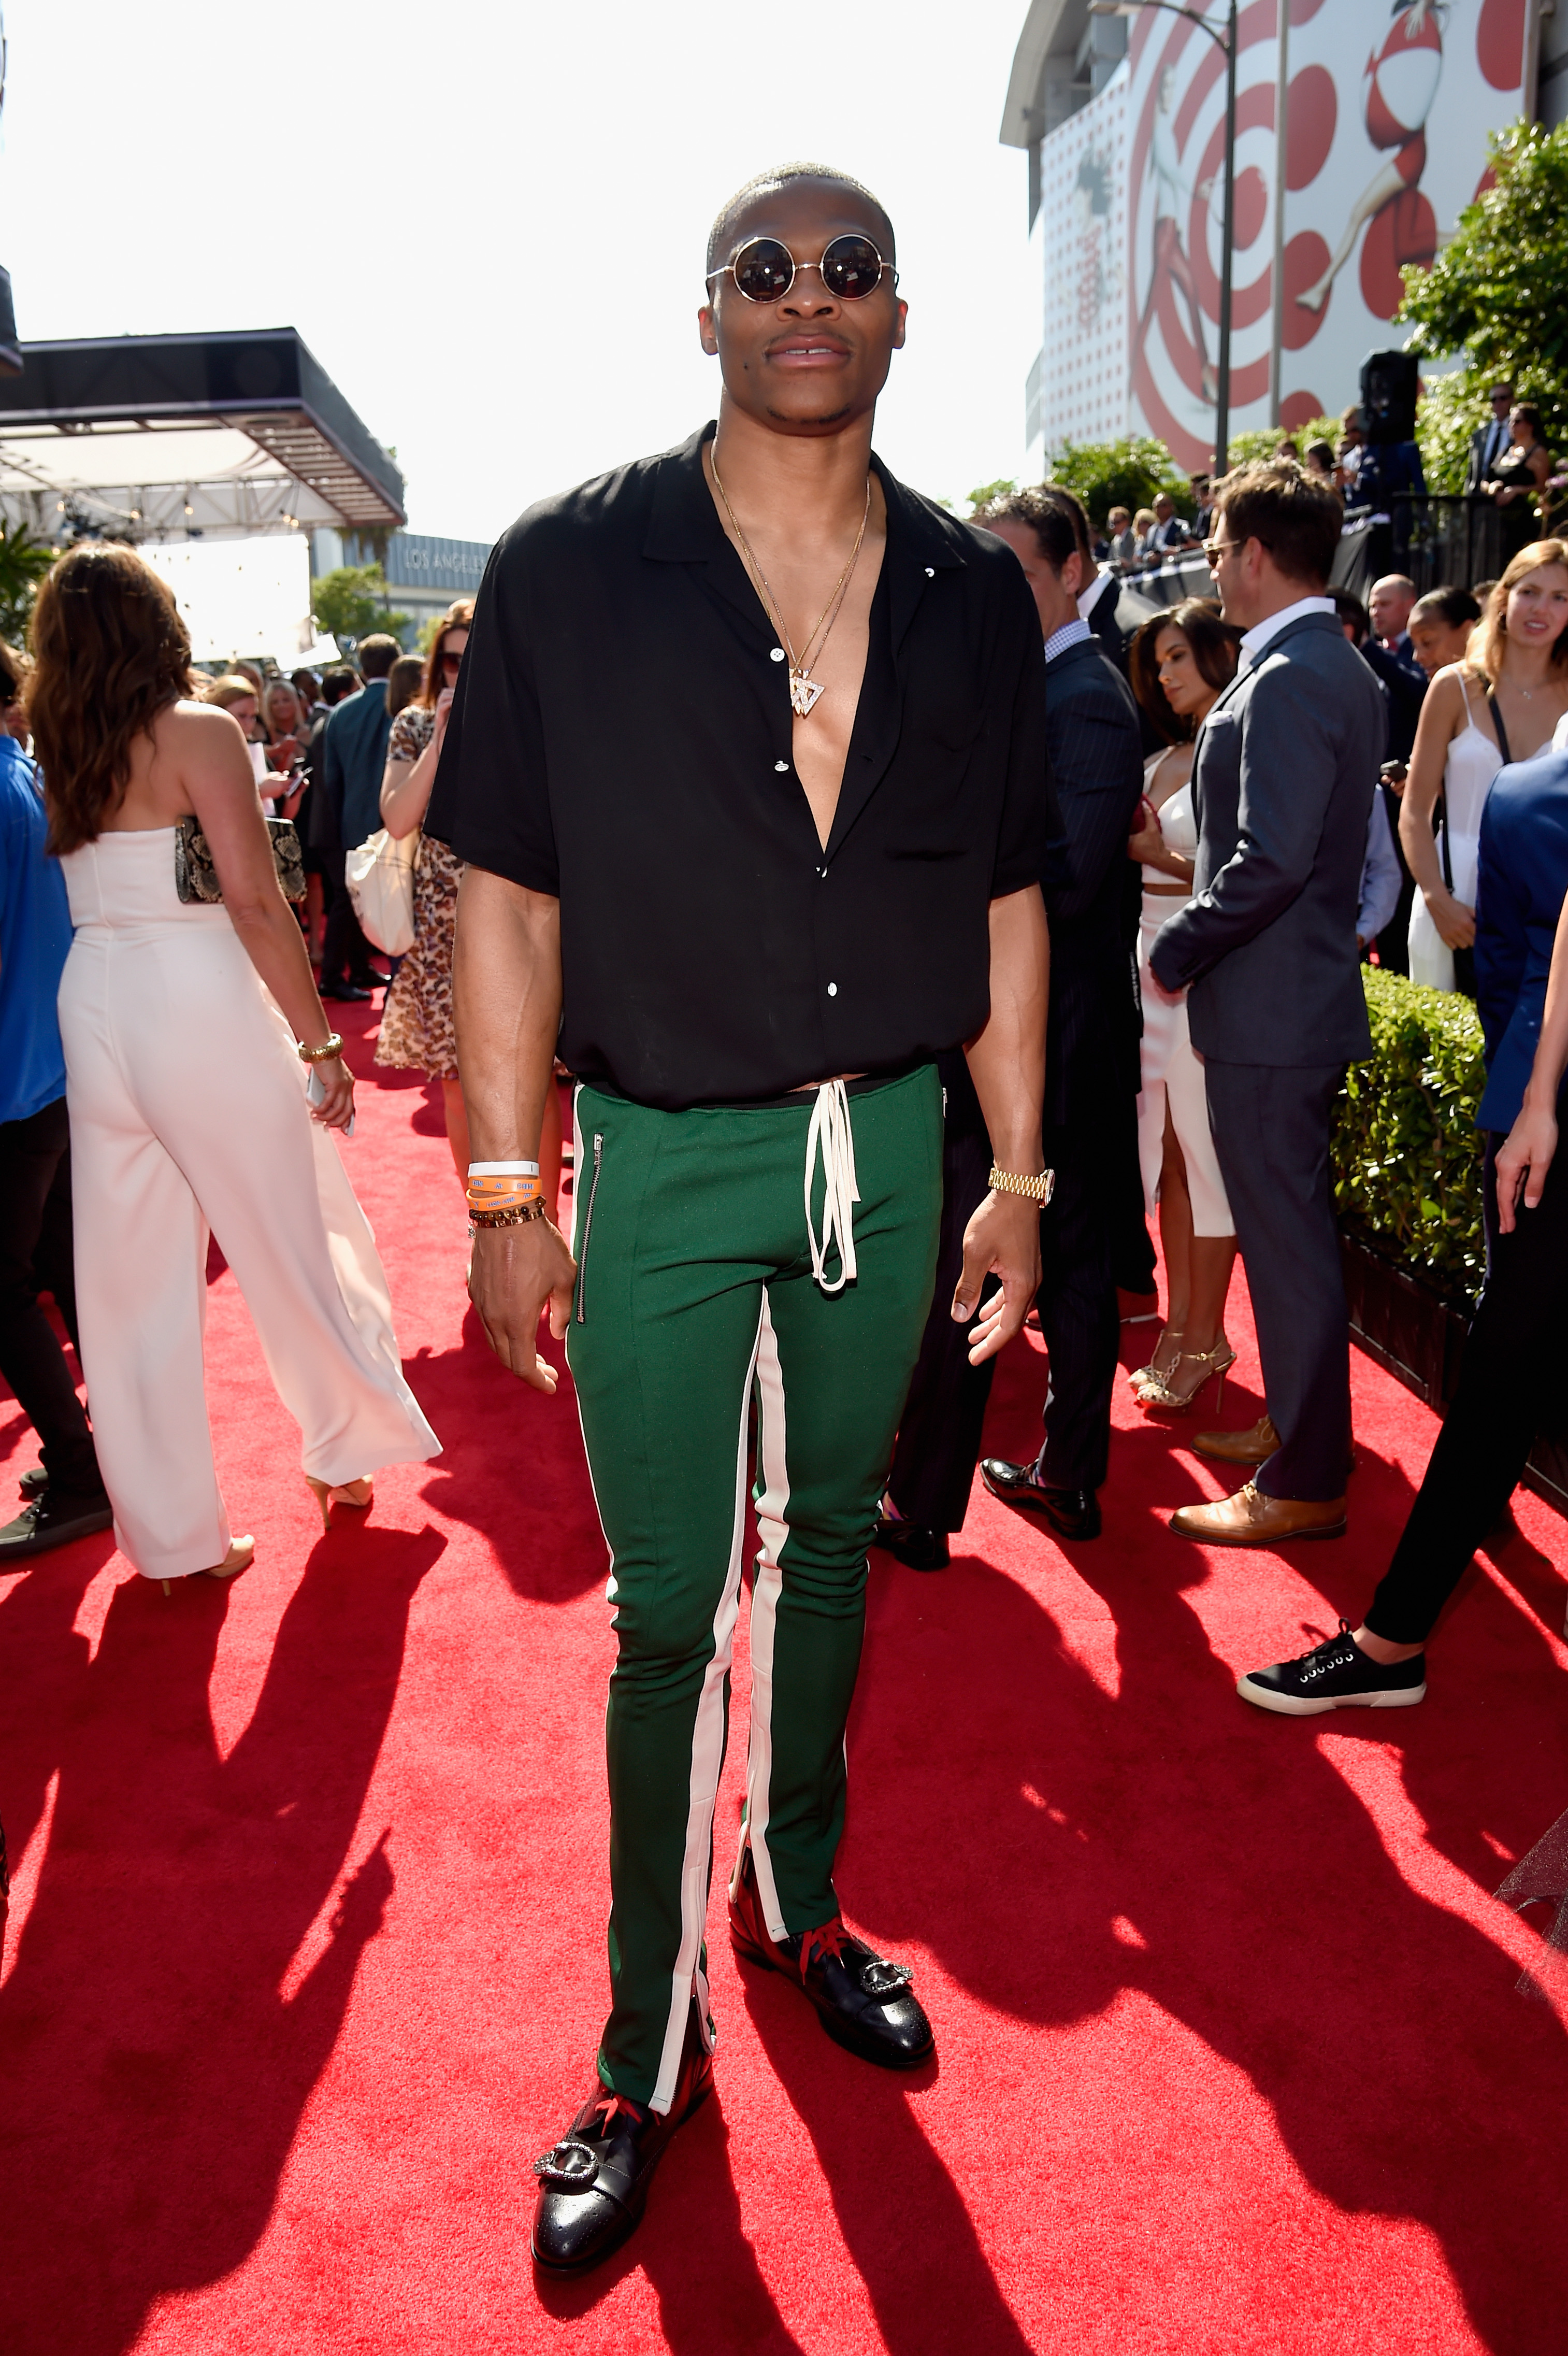 LOS ANGELES, CA - JULY 12: NBA player Russell Westbrook attends The 2017 ESPYS at [f500link]Microsoft[/f500link] Theater on July 12, 2017 in Los Angeles, California. (Photo by Kevin Mazur/Getty Images)